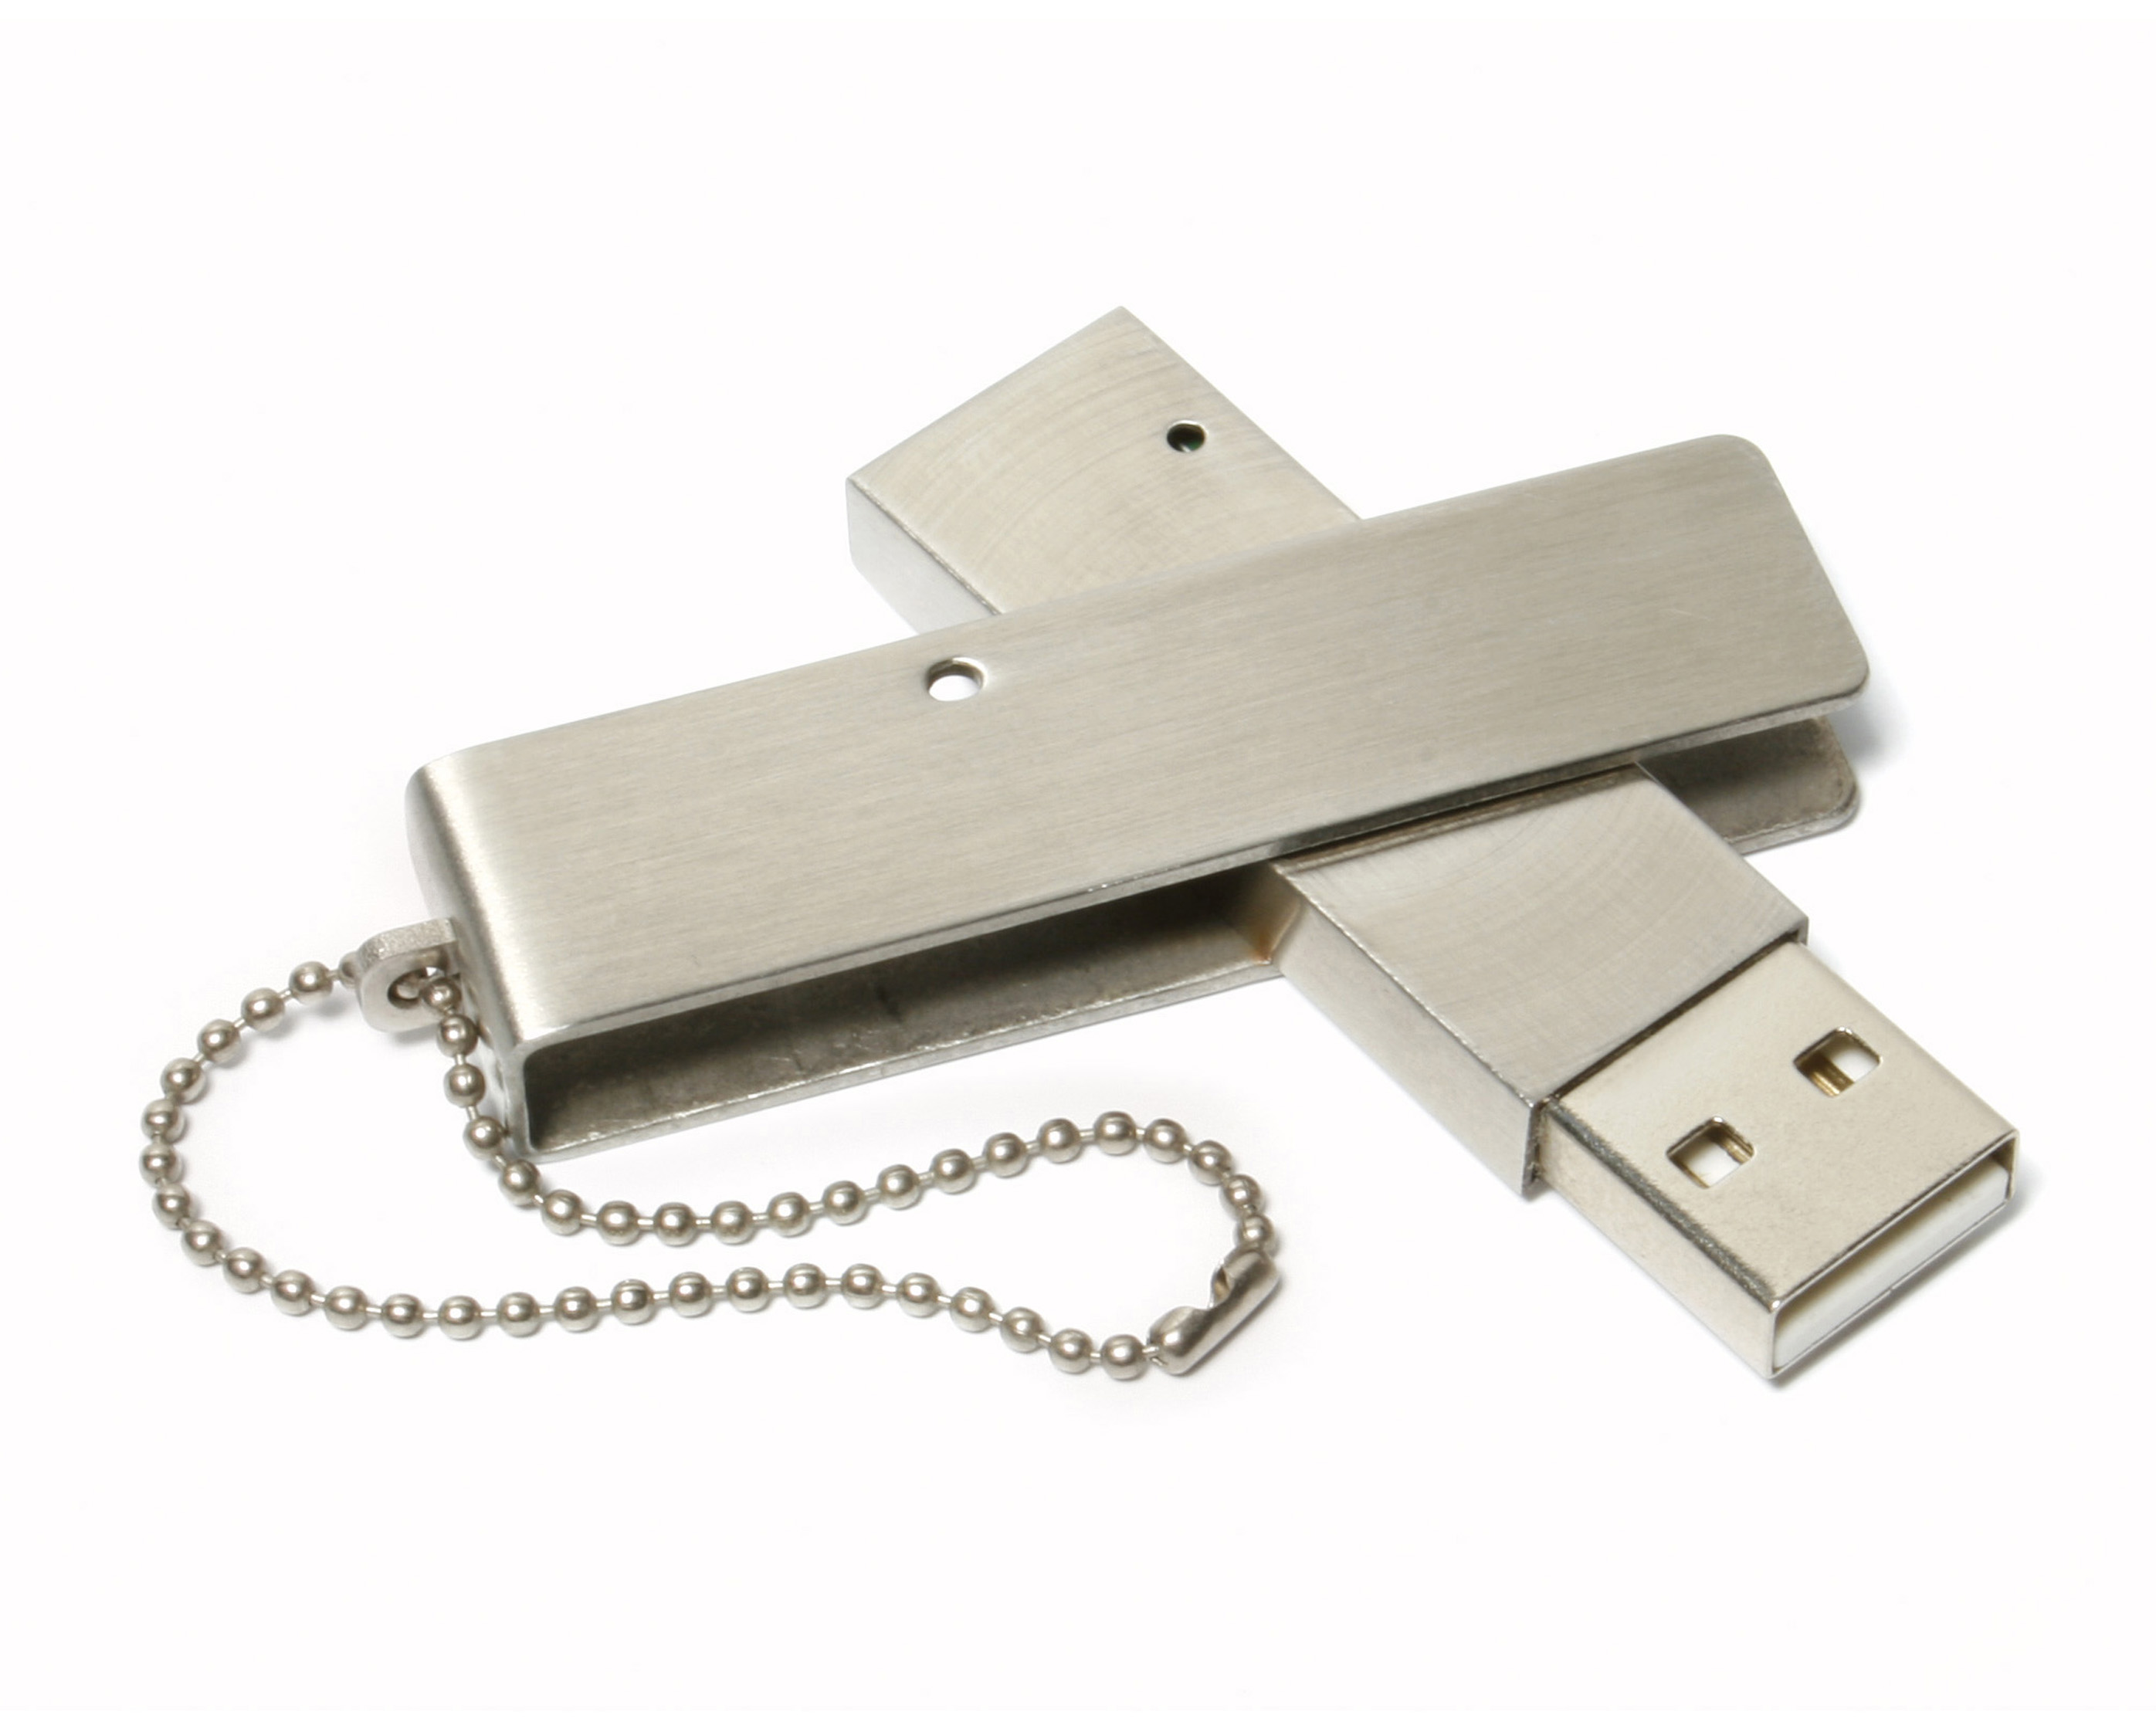 Twister 5 USB  FlashDrive